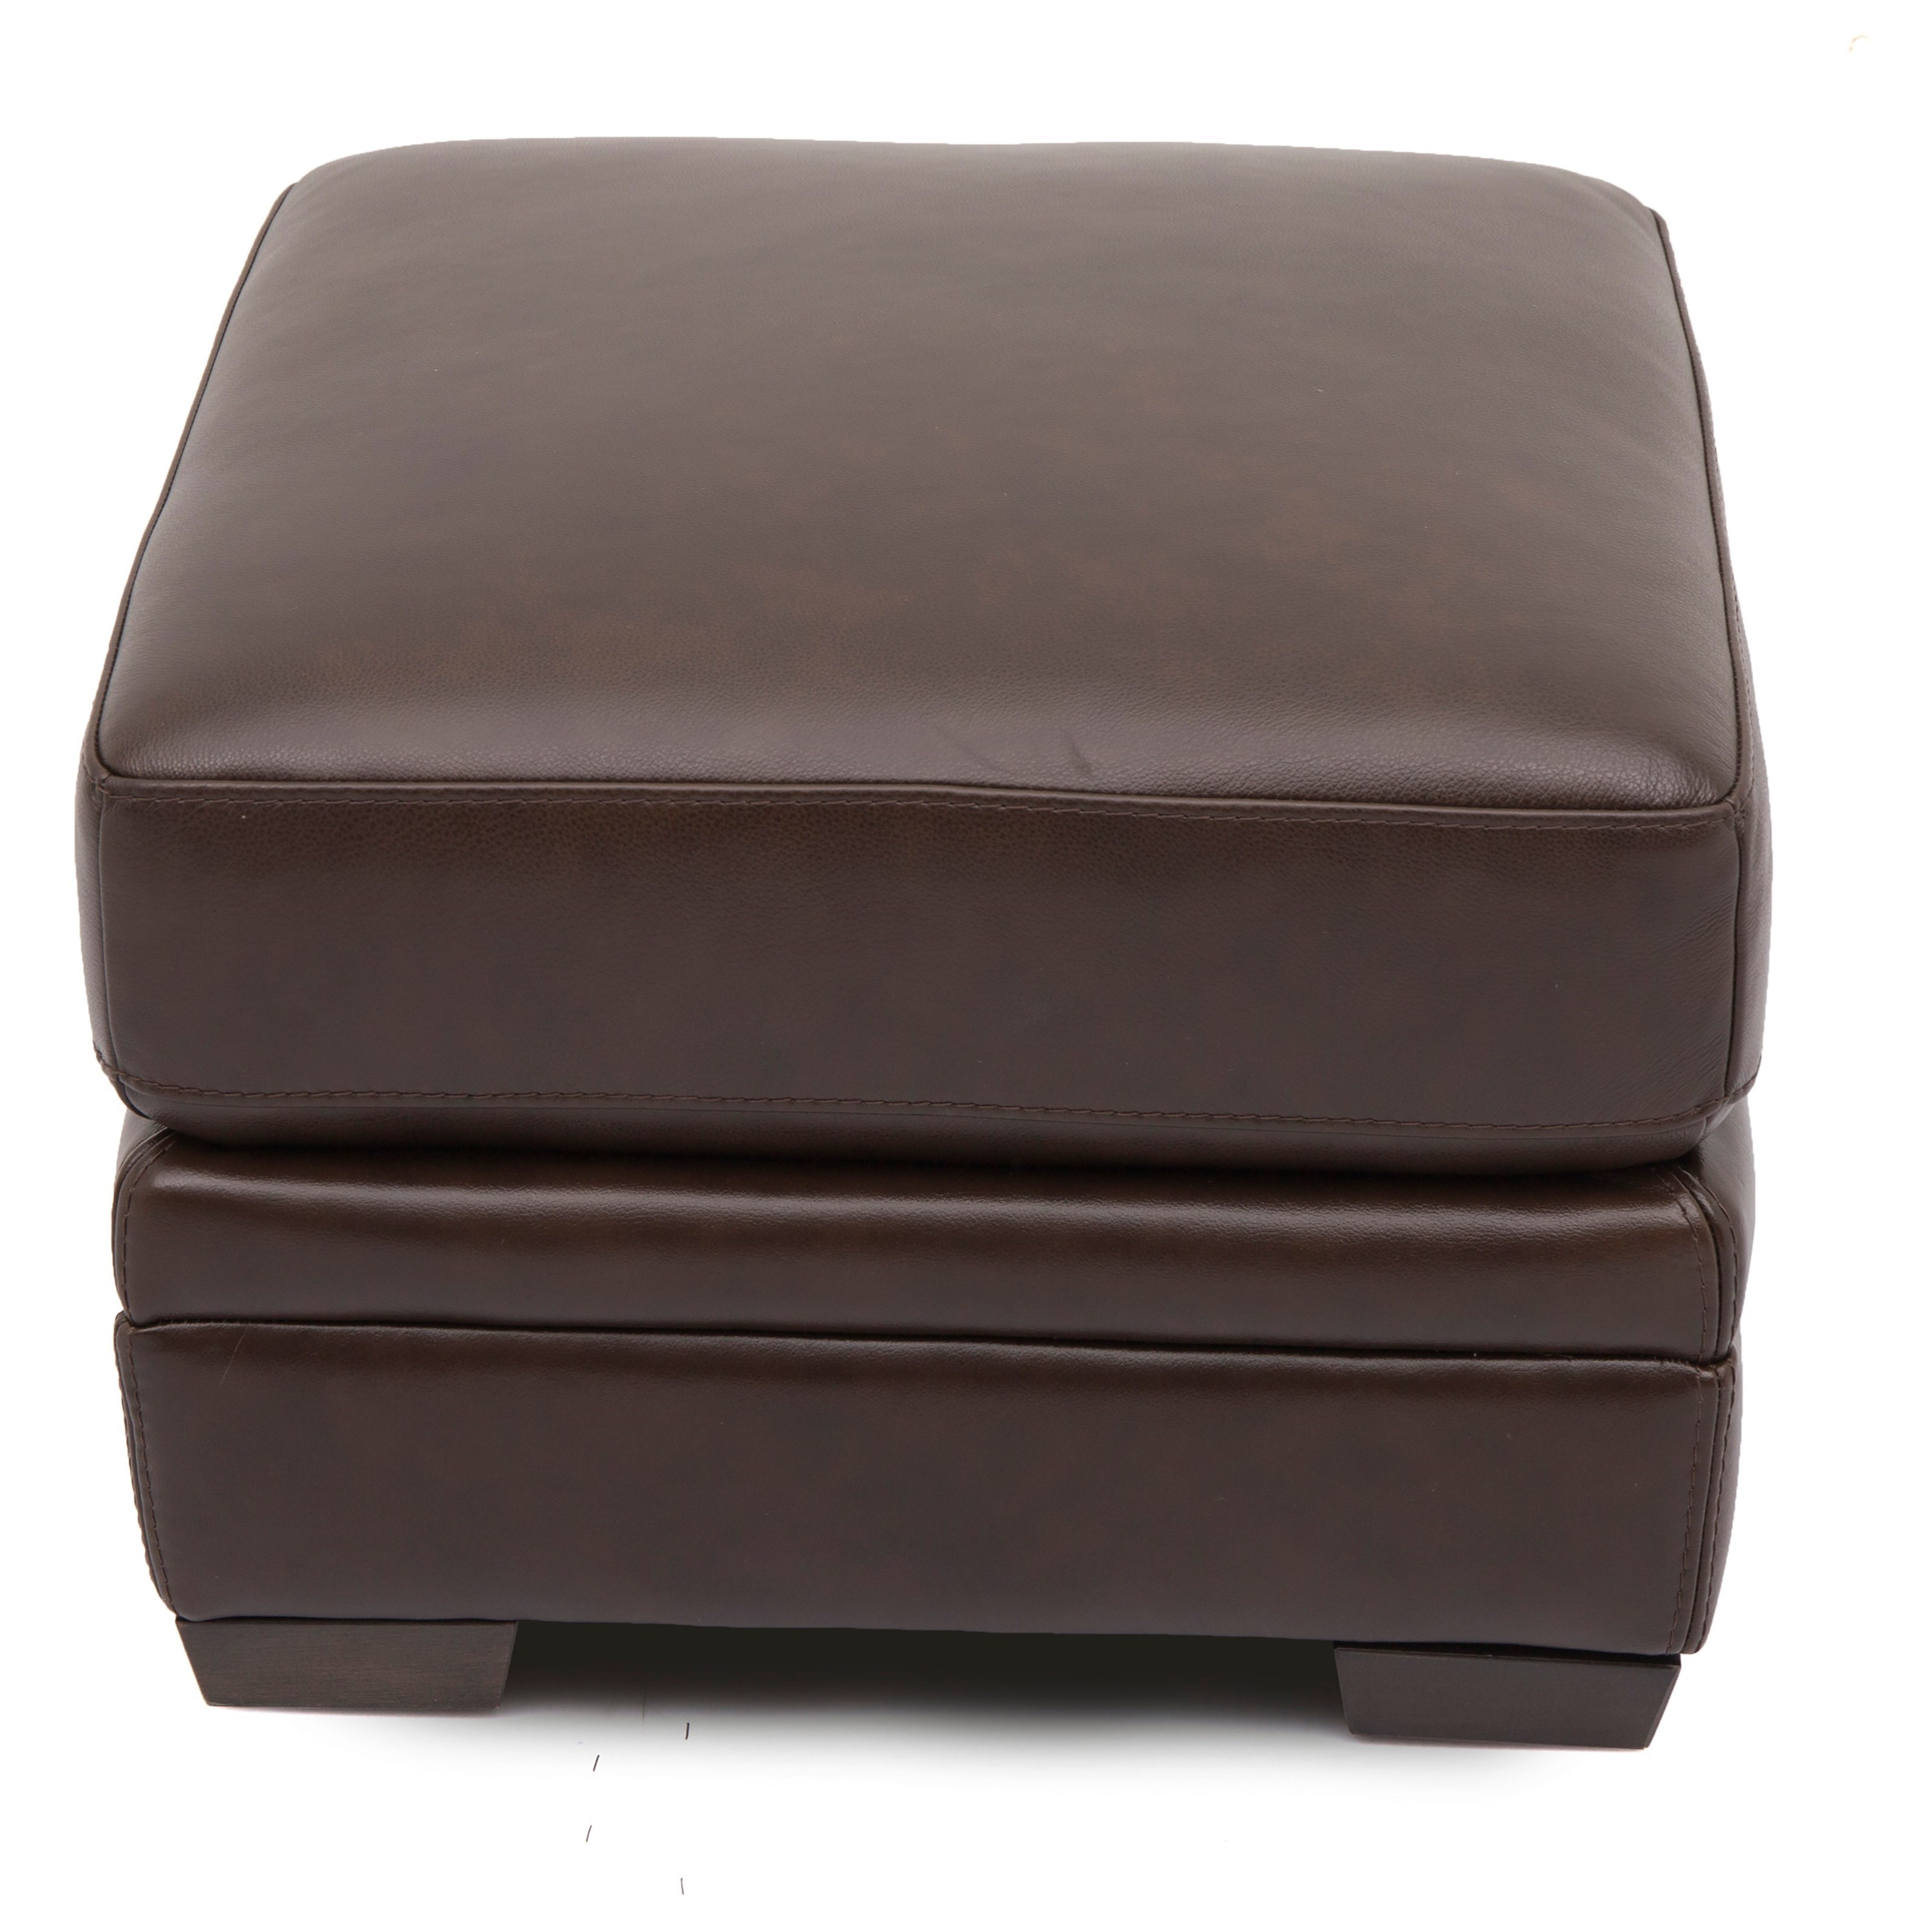 11674 Ottoman by HTL at Wilson's Furniture